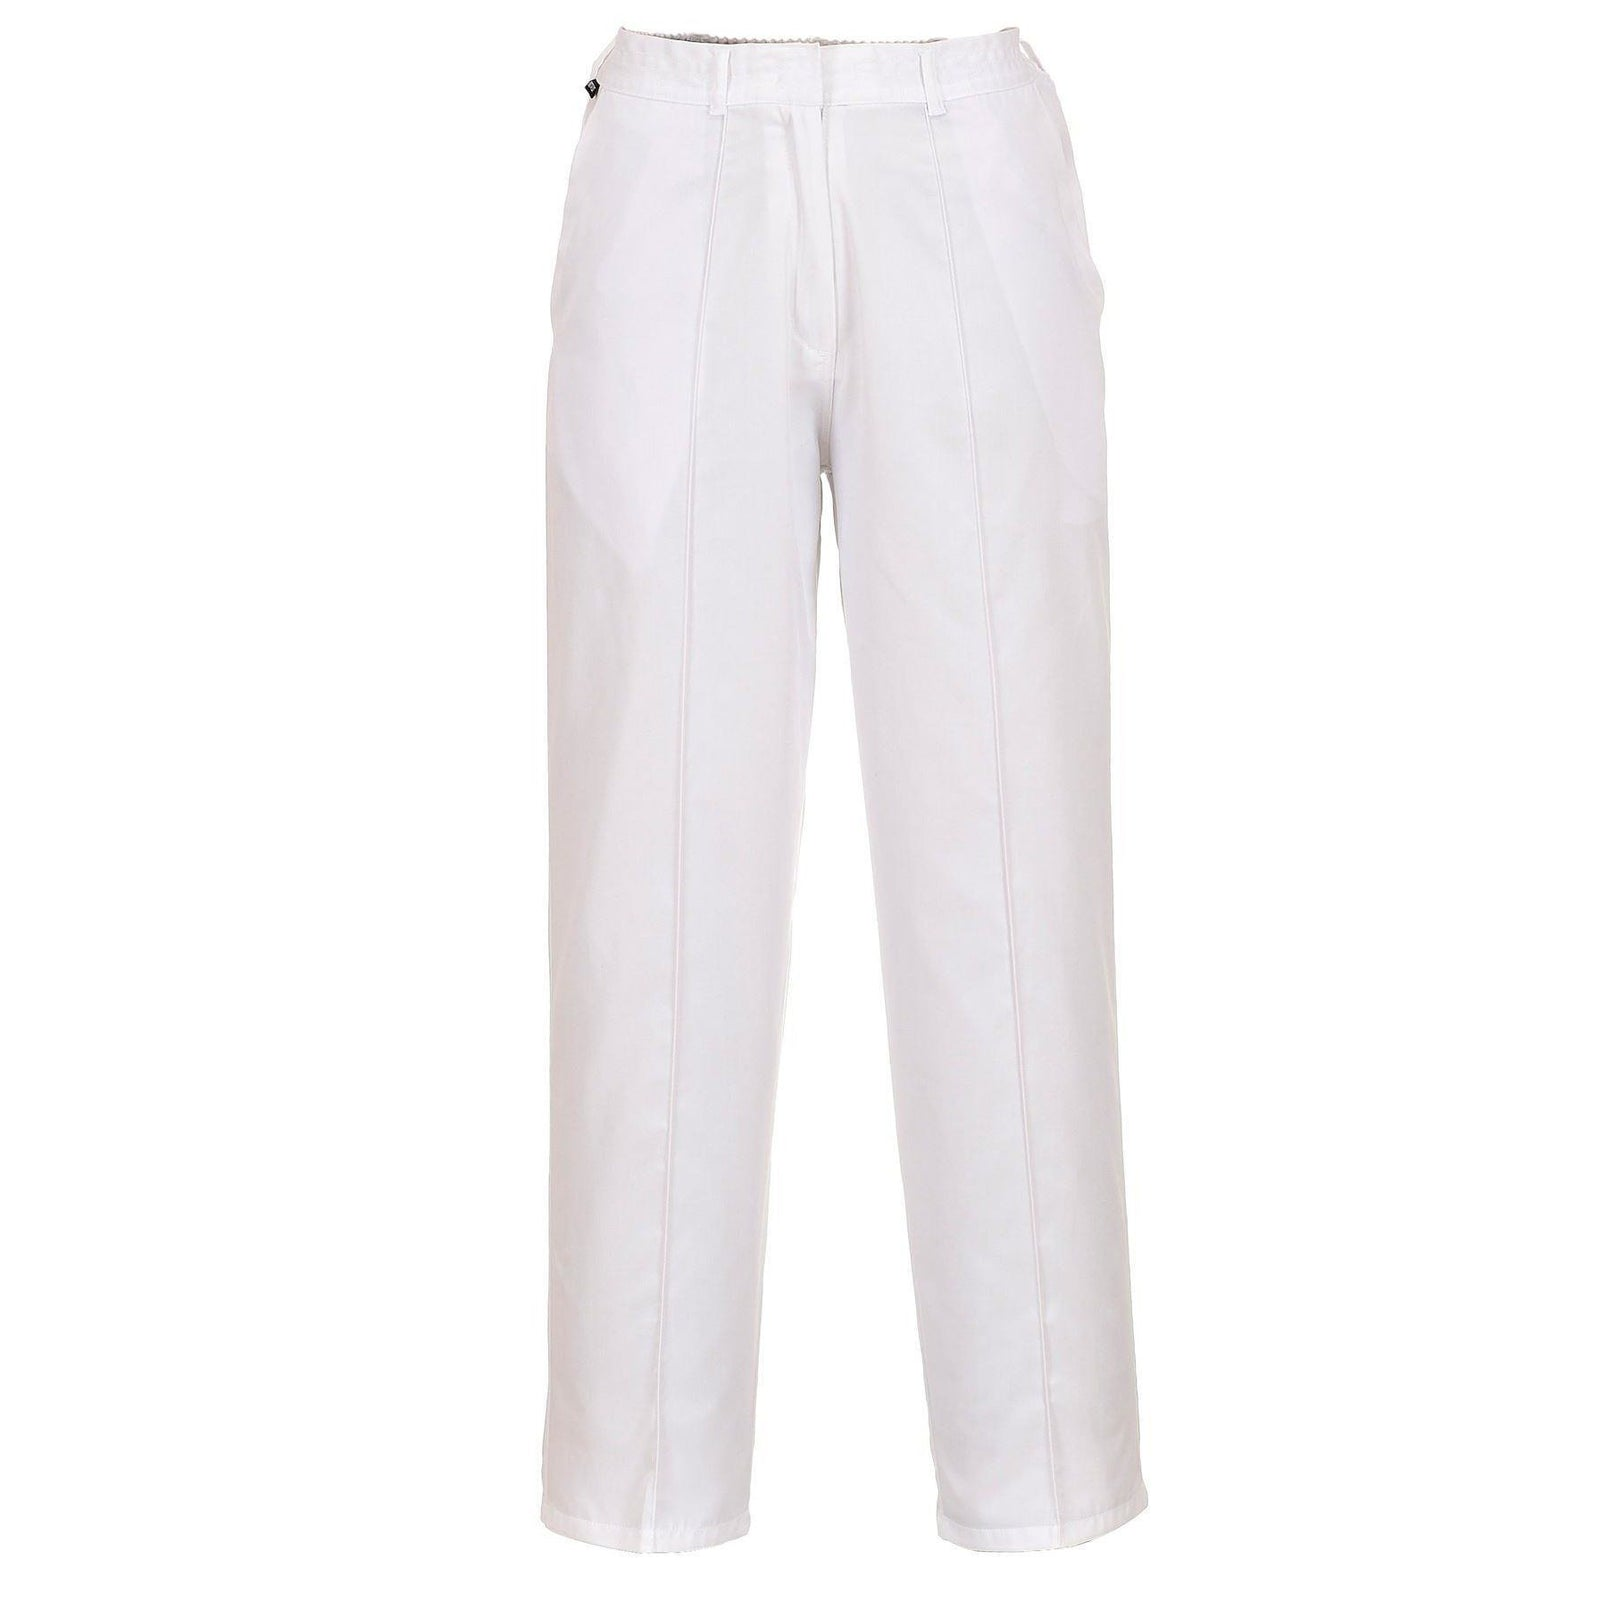 Portwest Ladies Elasticated Trouser LW97 - reid outdoors